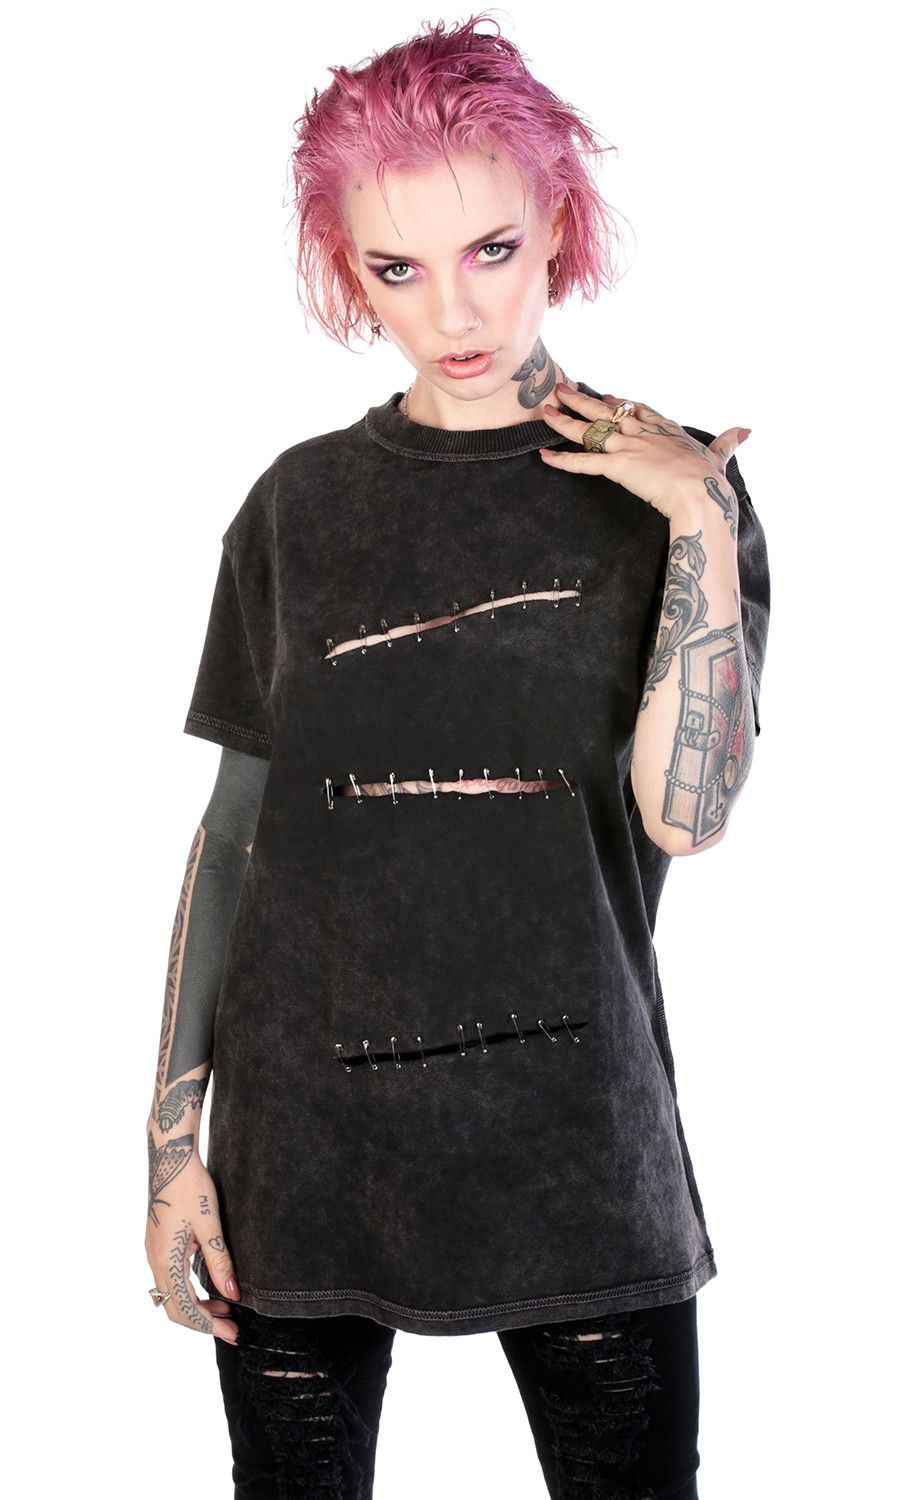 Punk Kleidung Selber Machen Sid Safety Pin Tee Disturbiaclothing Disturbia Vintage Washed